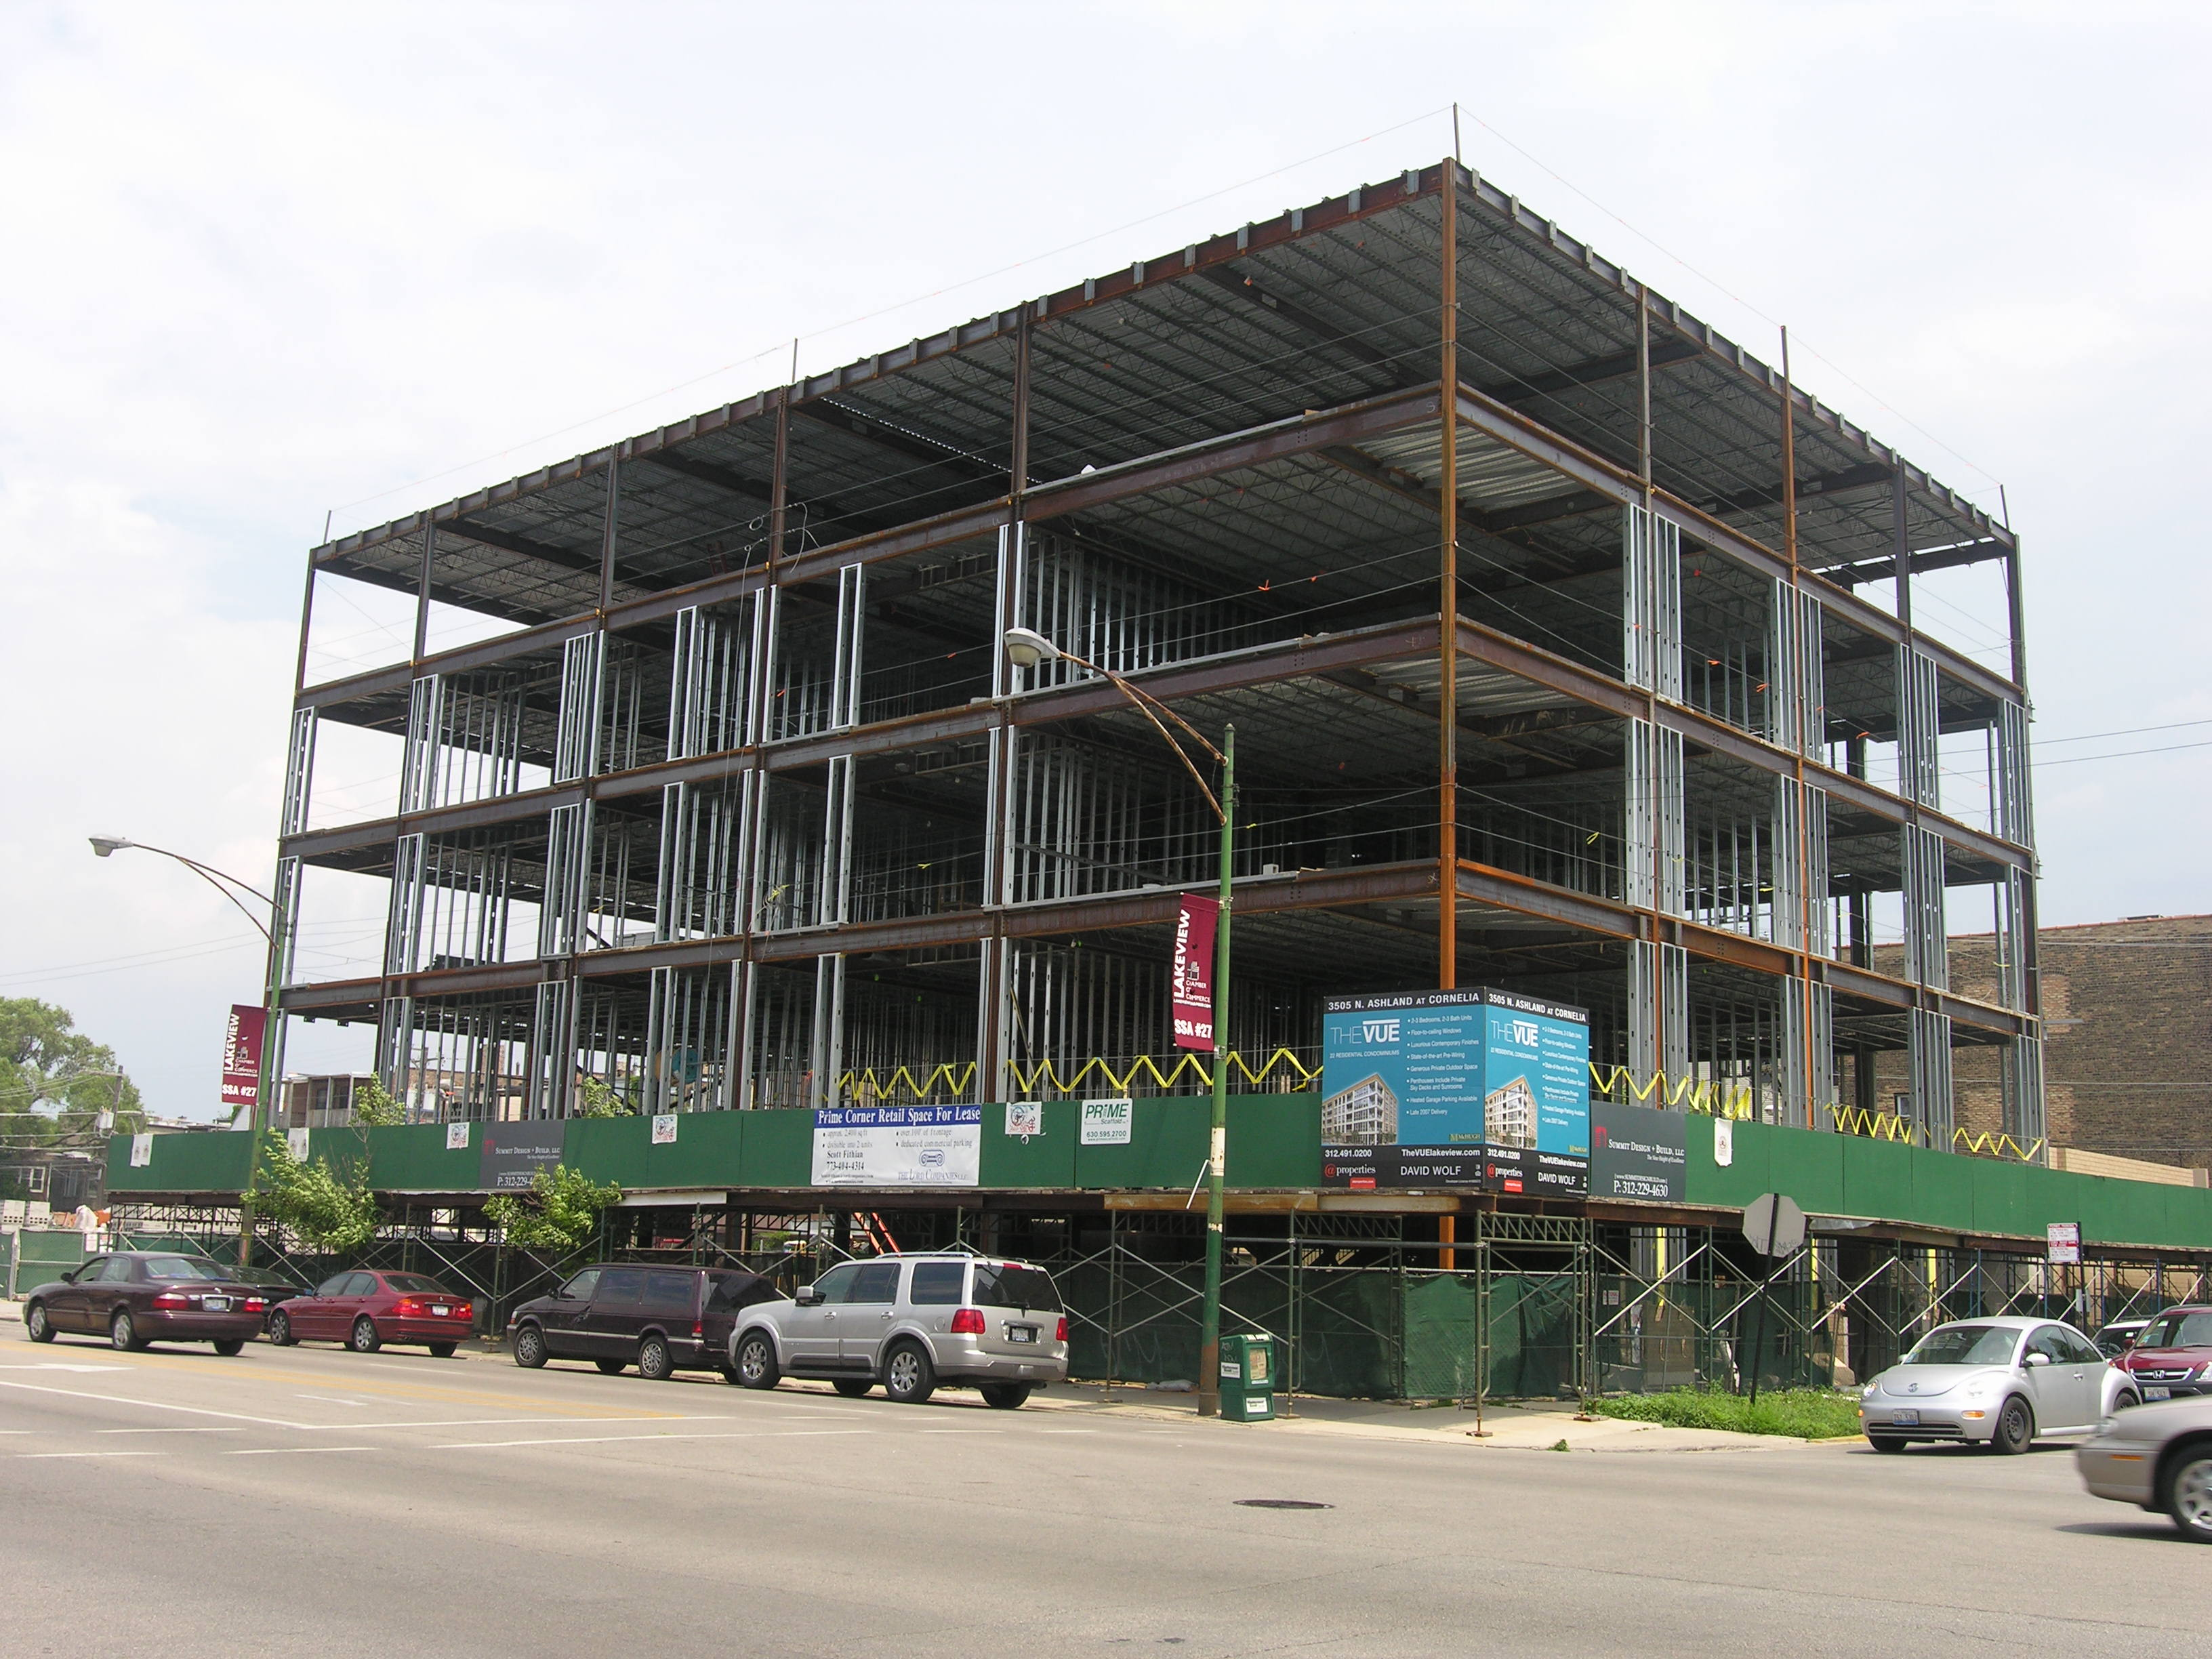 Works in progess: developments on Ashland in Lake View